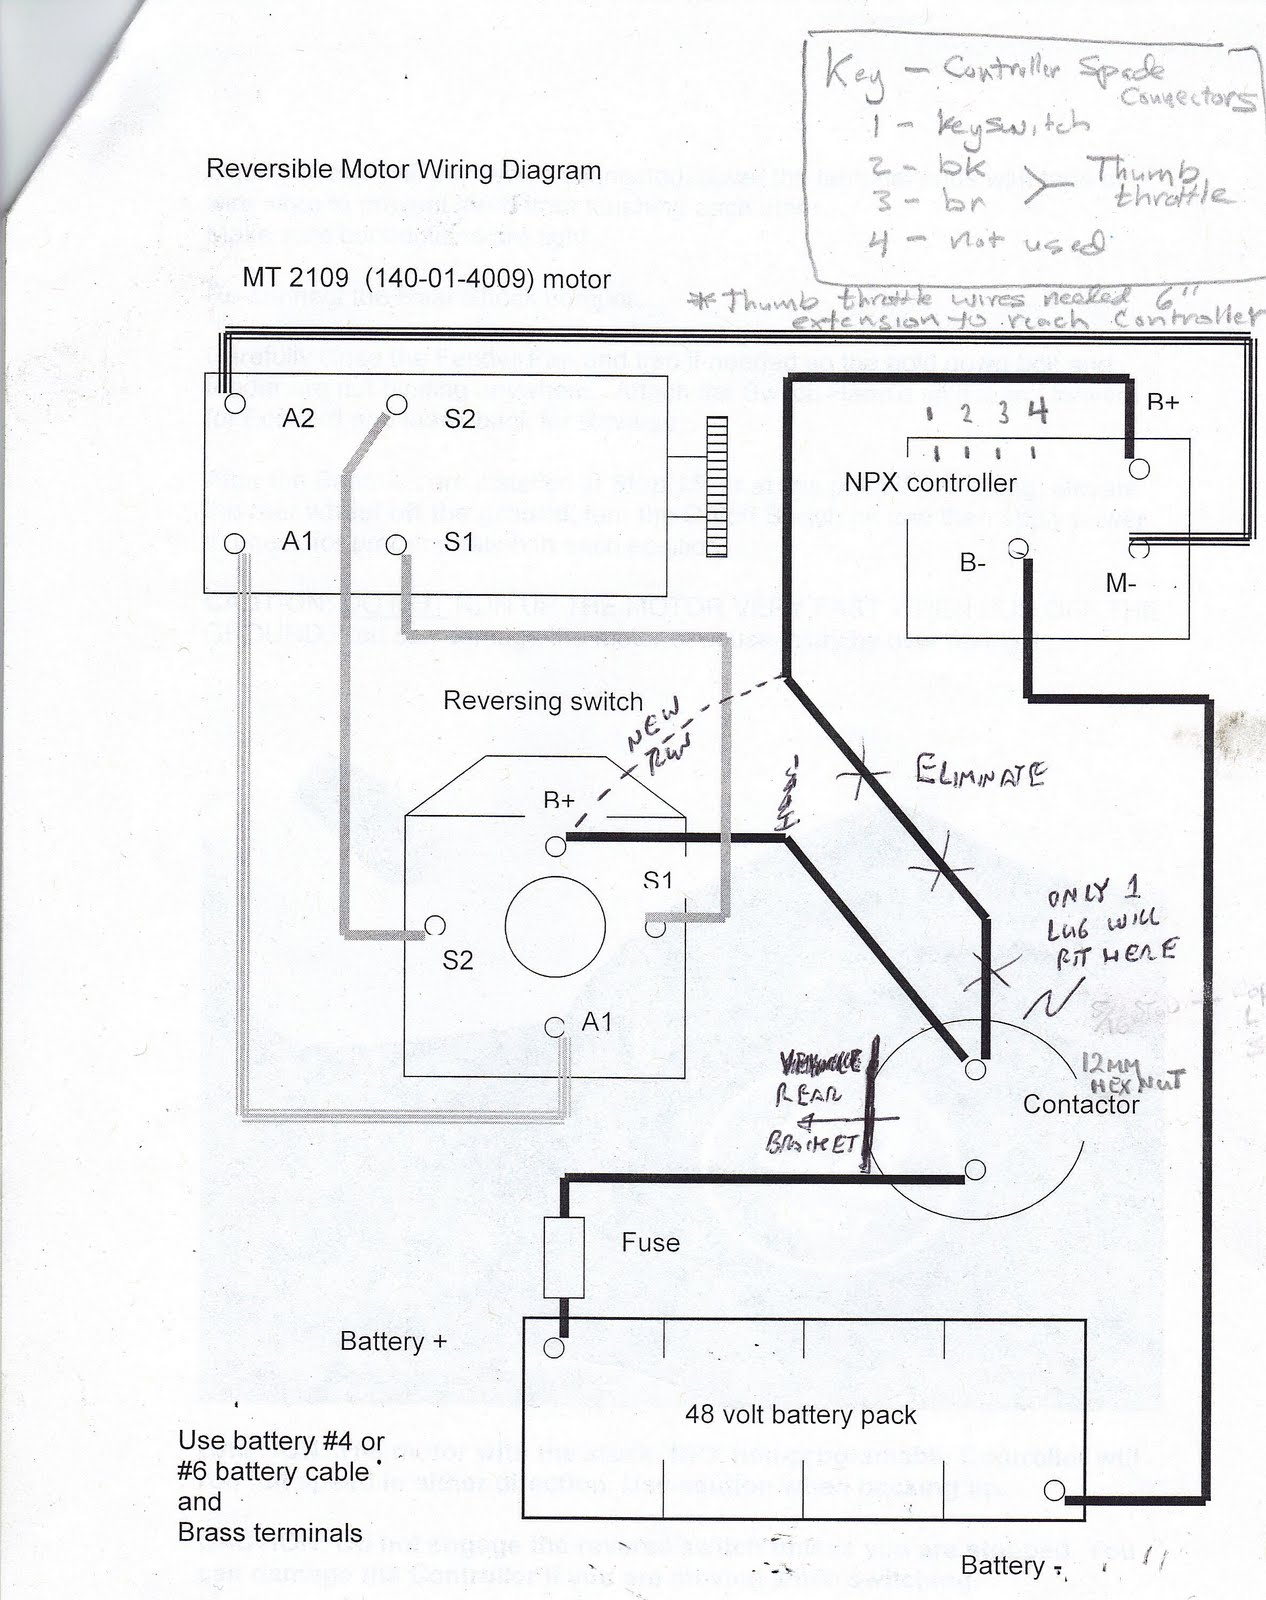 Inside The Delta Wiring Diagram furthermore Square D Magic Motor Starter Wiring Diagram also 220 Volt Motor Wiring Diagram besides Apc Epo Wiring Diagram also US7859217. on eaton 3 phase starter wiring diagram